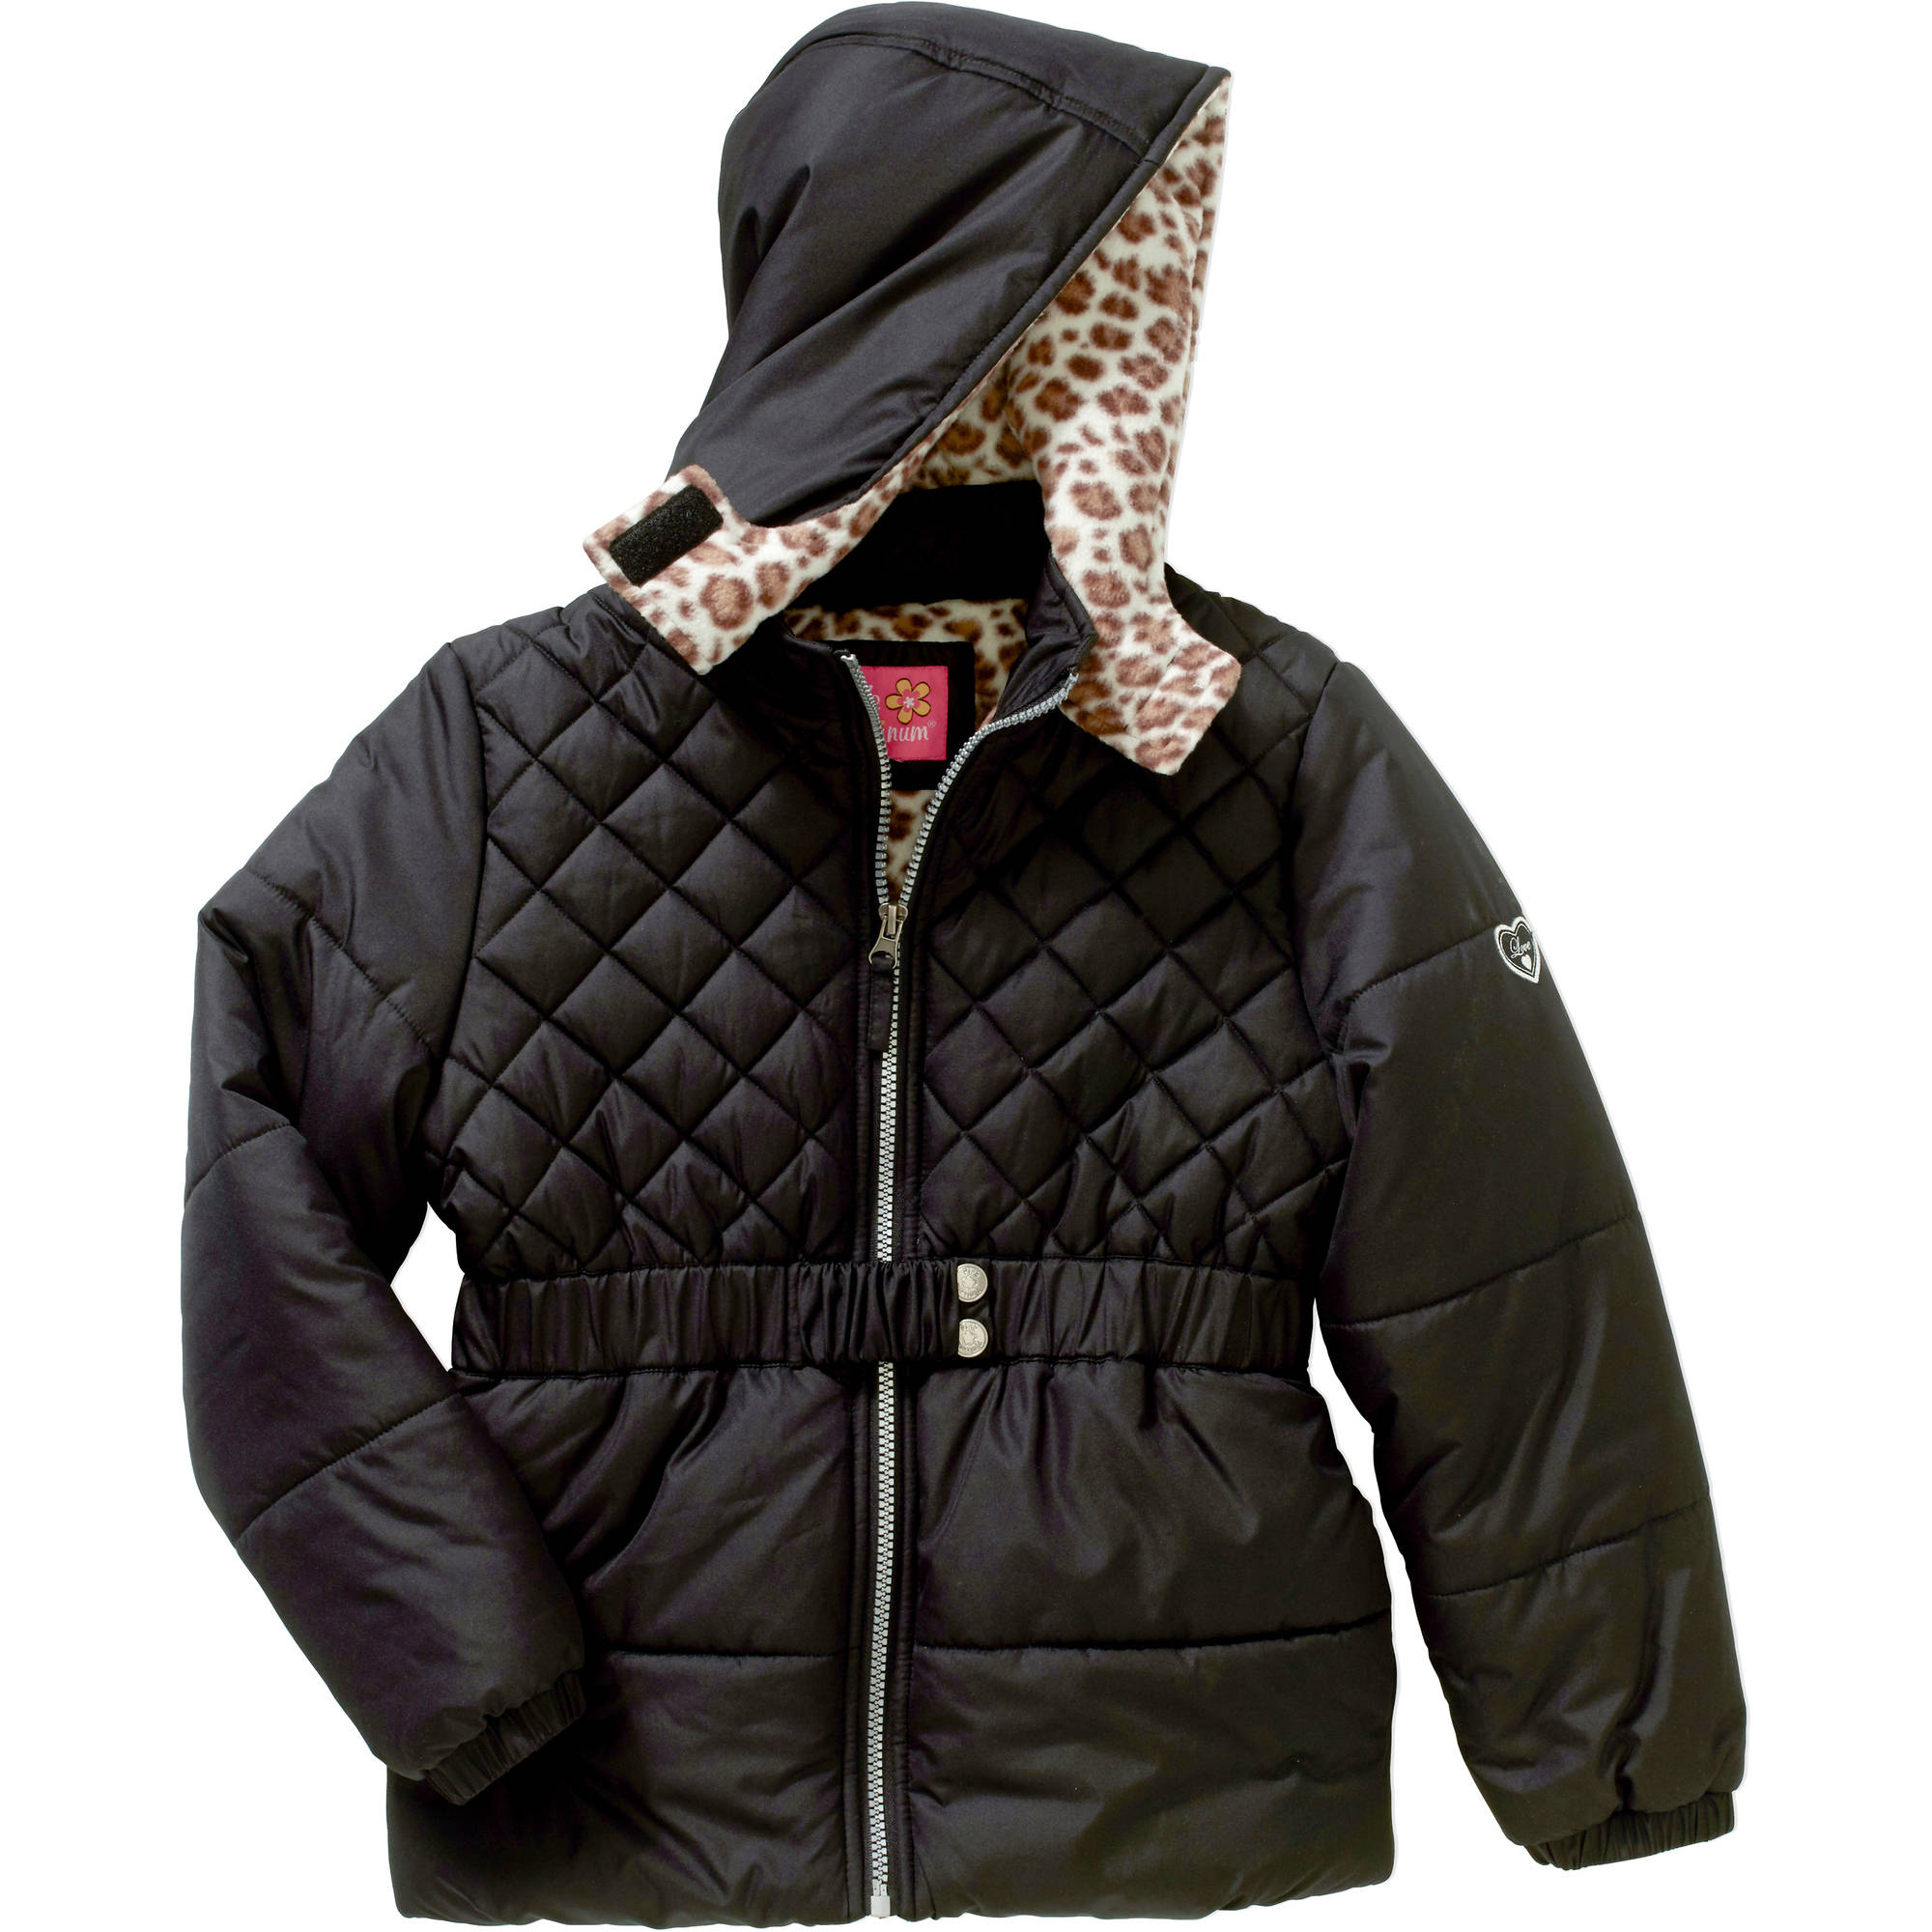 Girls' Belted Quilted Puffer Jacket with Cheetah Print Lining and Hood